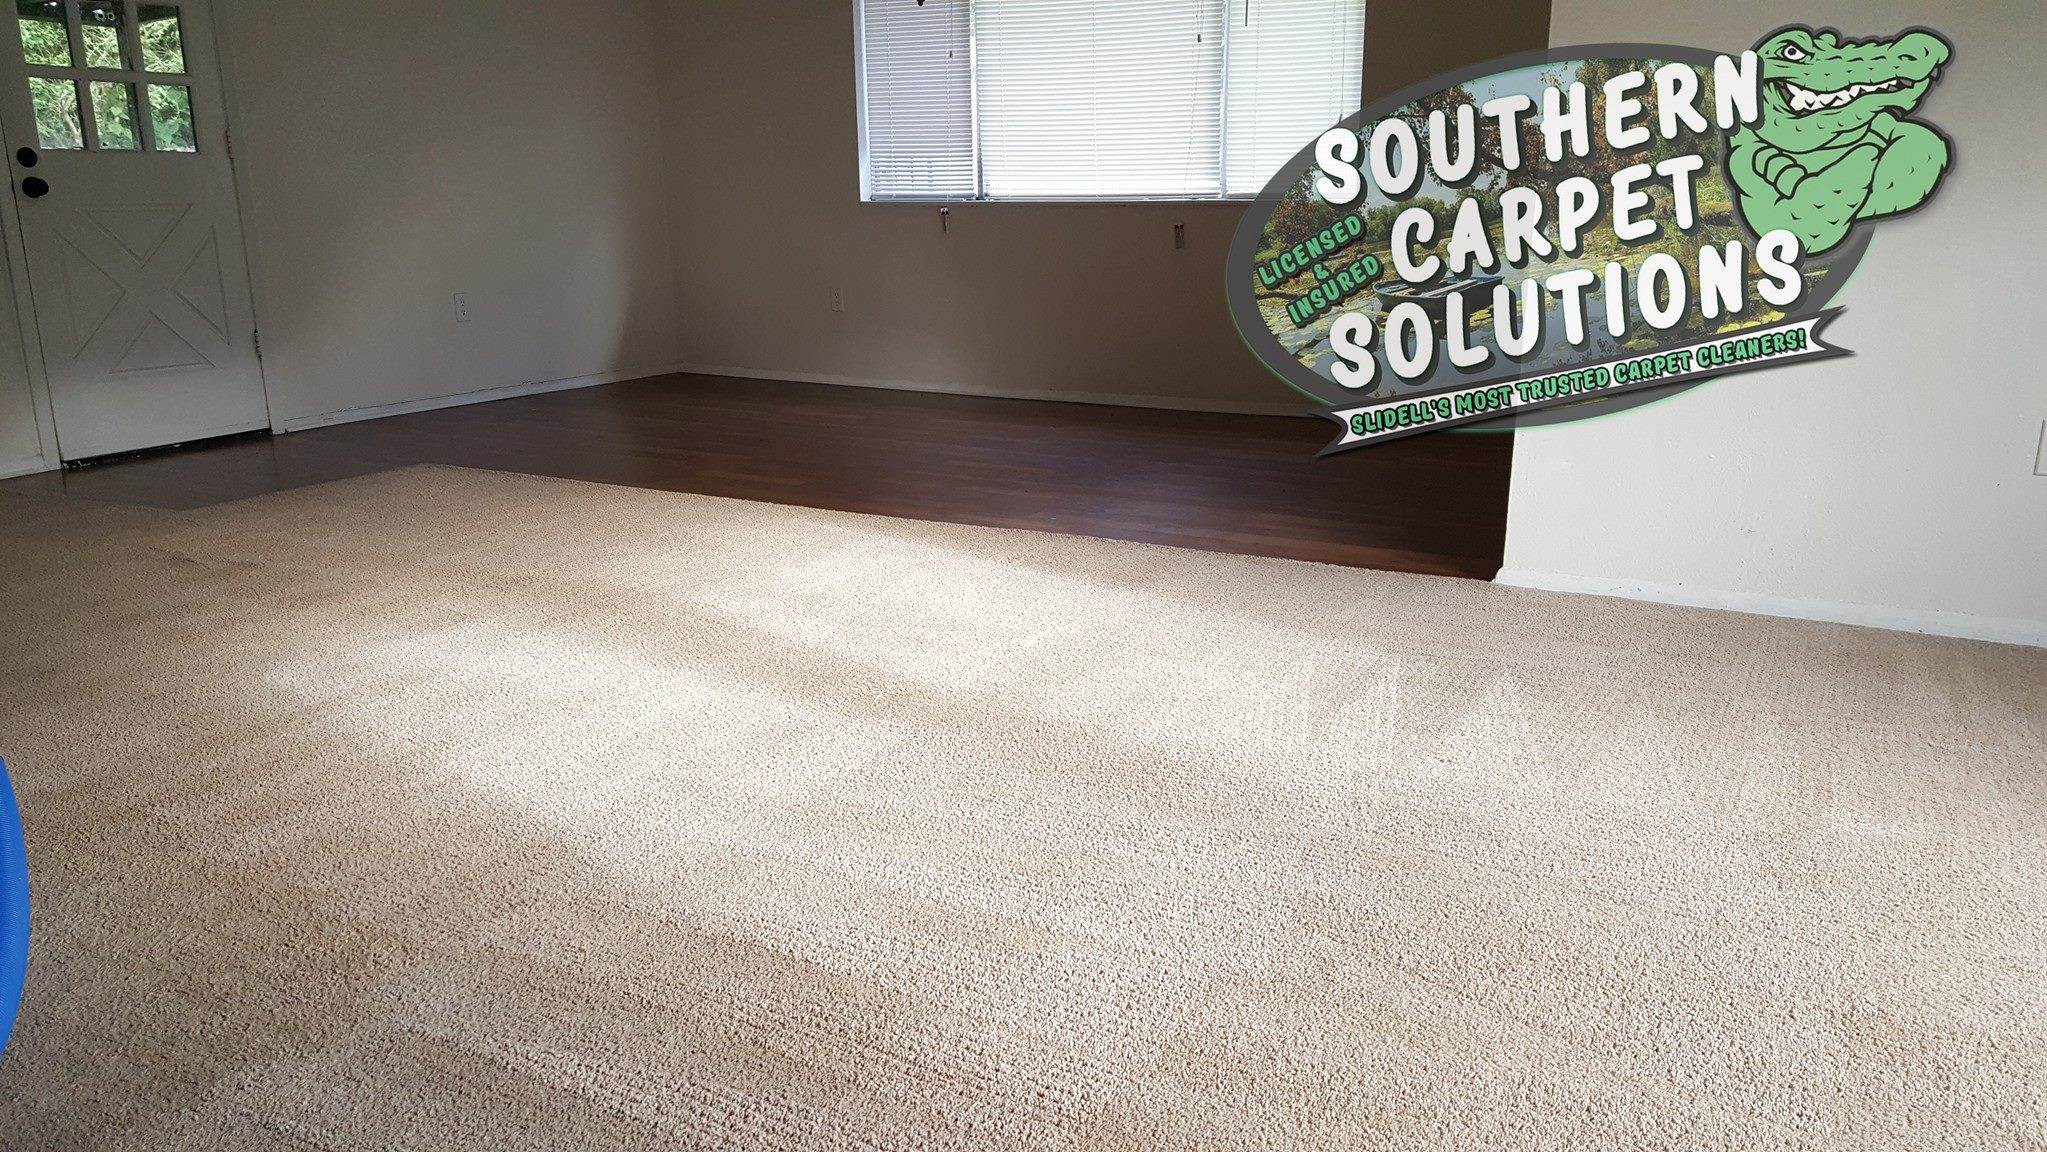 after-carpet-cleaning-service-slidell-LA